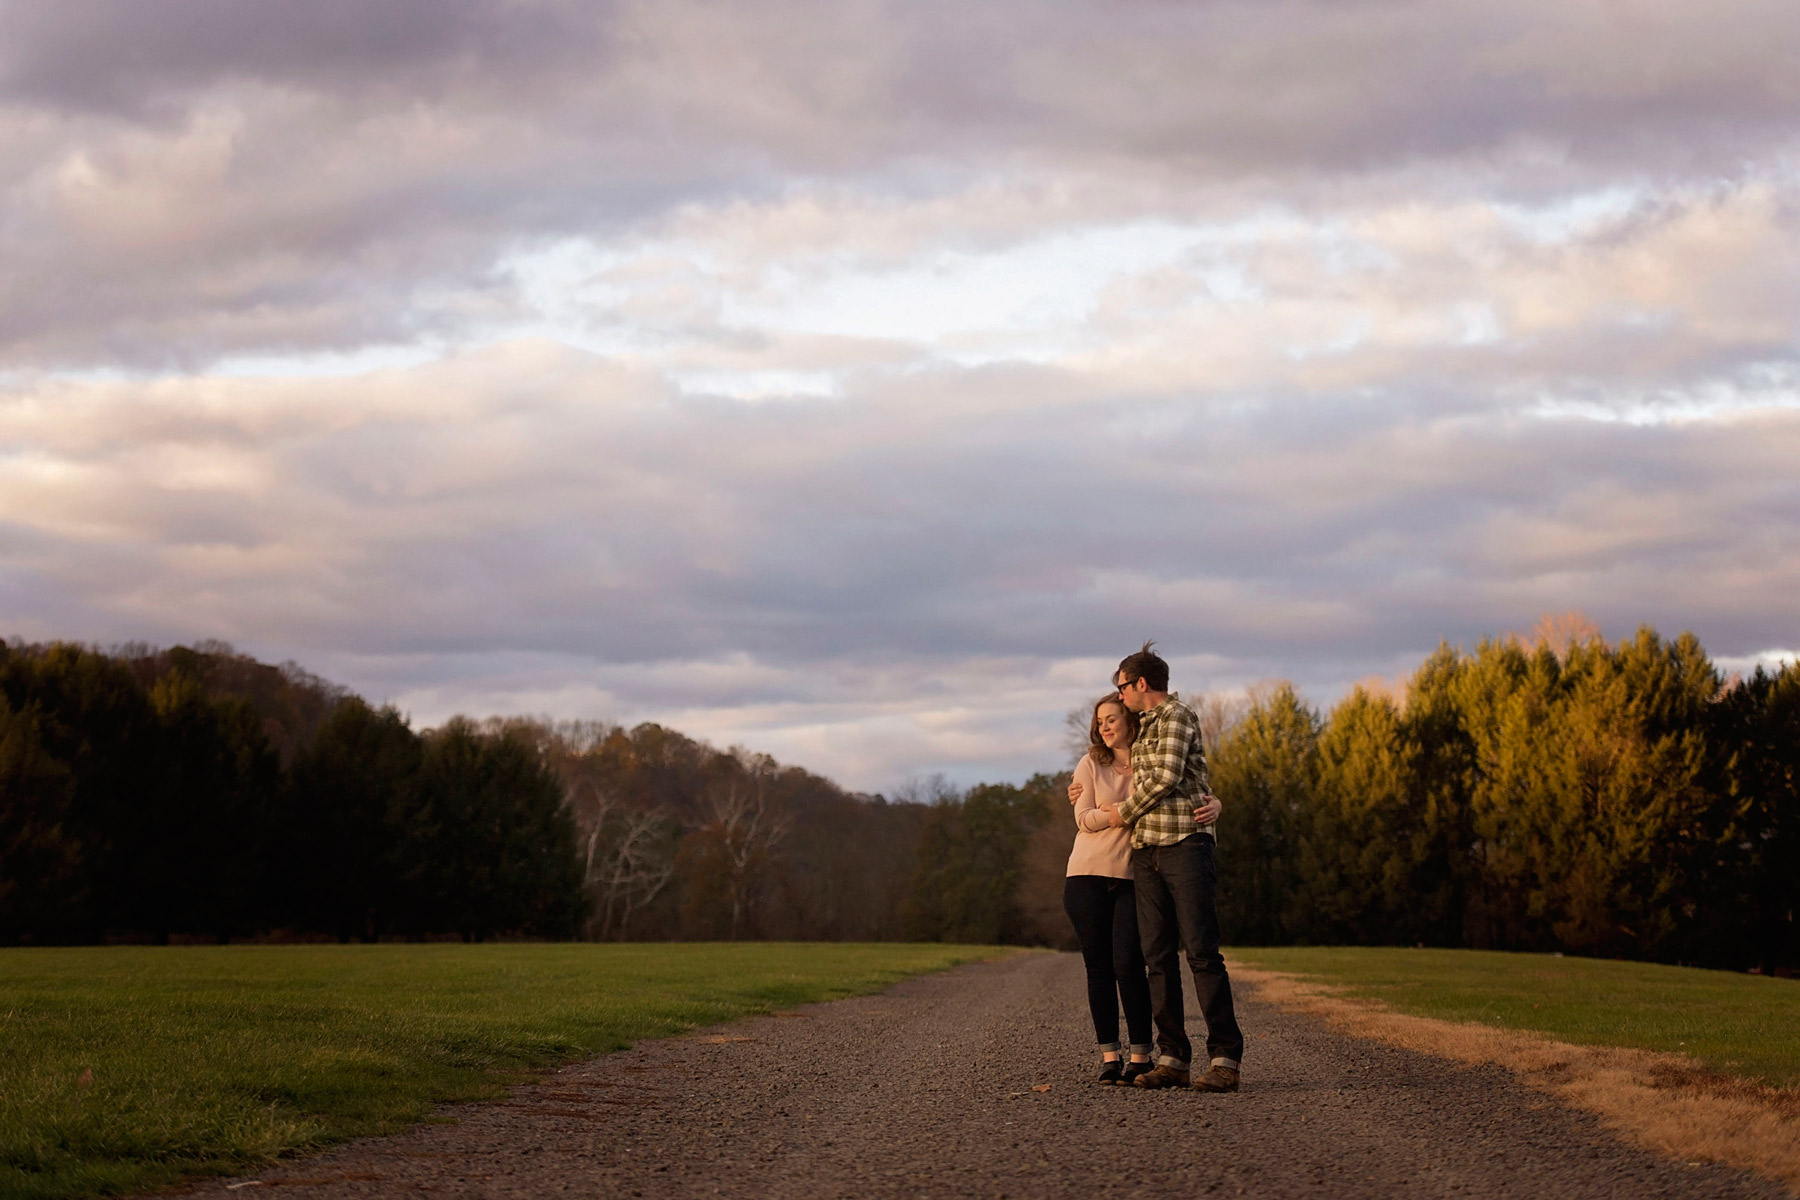 Bucks_county_engagement_session_Tinicum_Park_couple_standing_in_sunlight_on_path.JPG